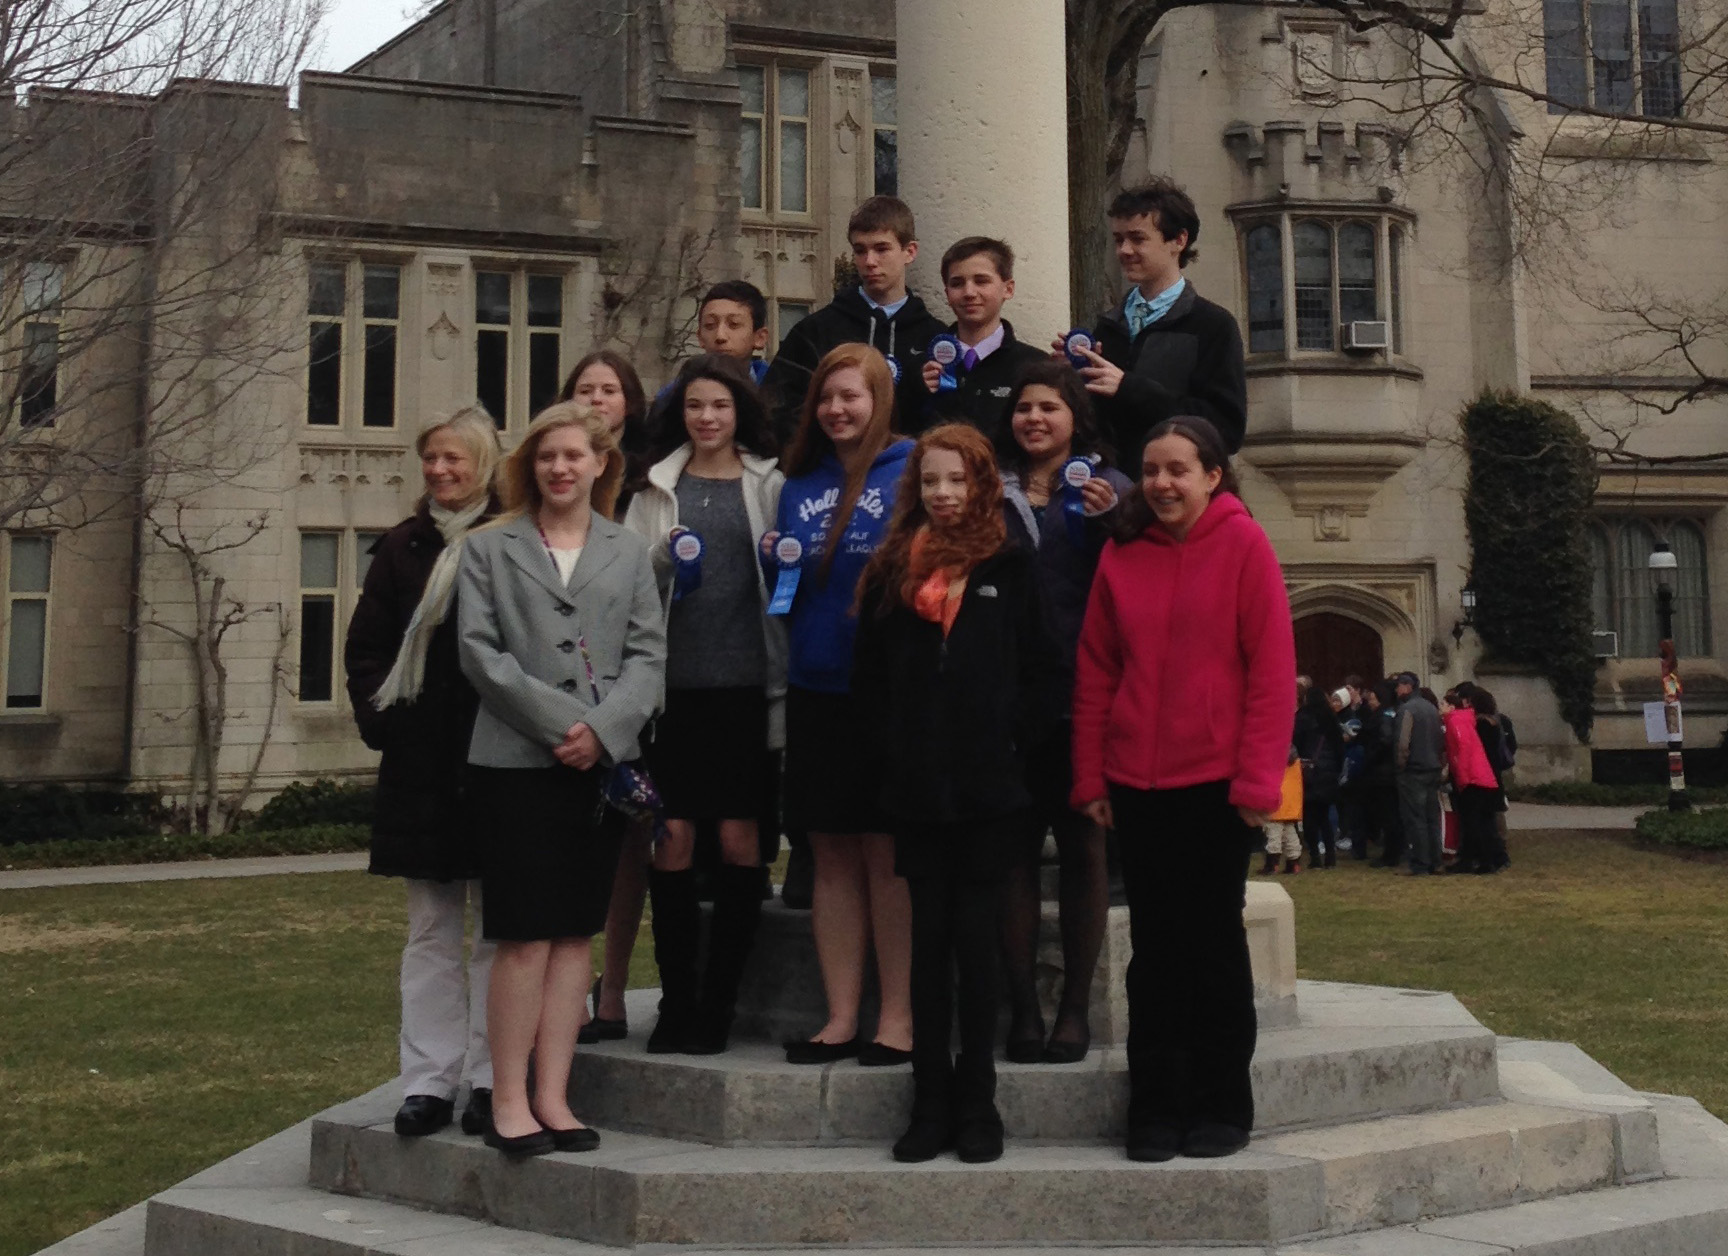 Emma Anmolsingh (pink jacket, far right) poses with her classmates after regionals at Princeton University.